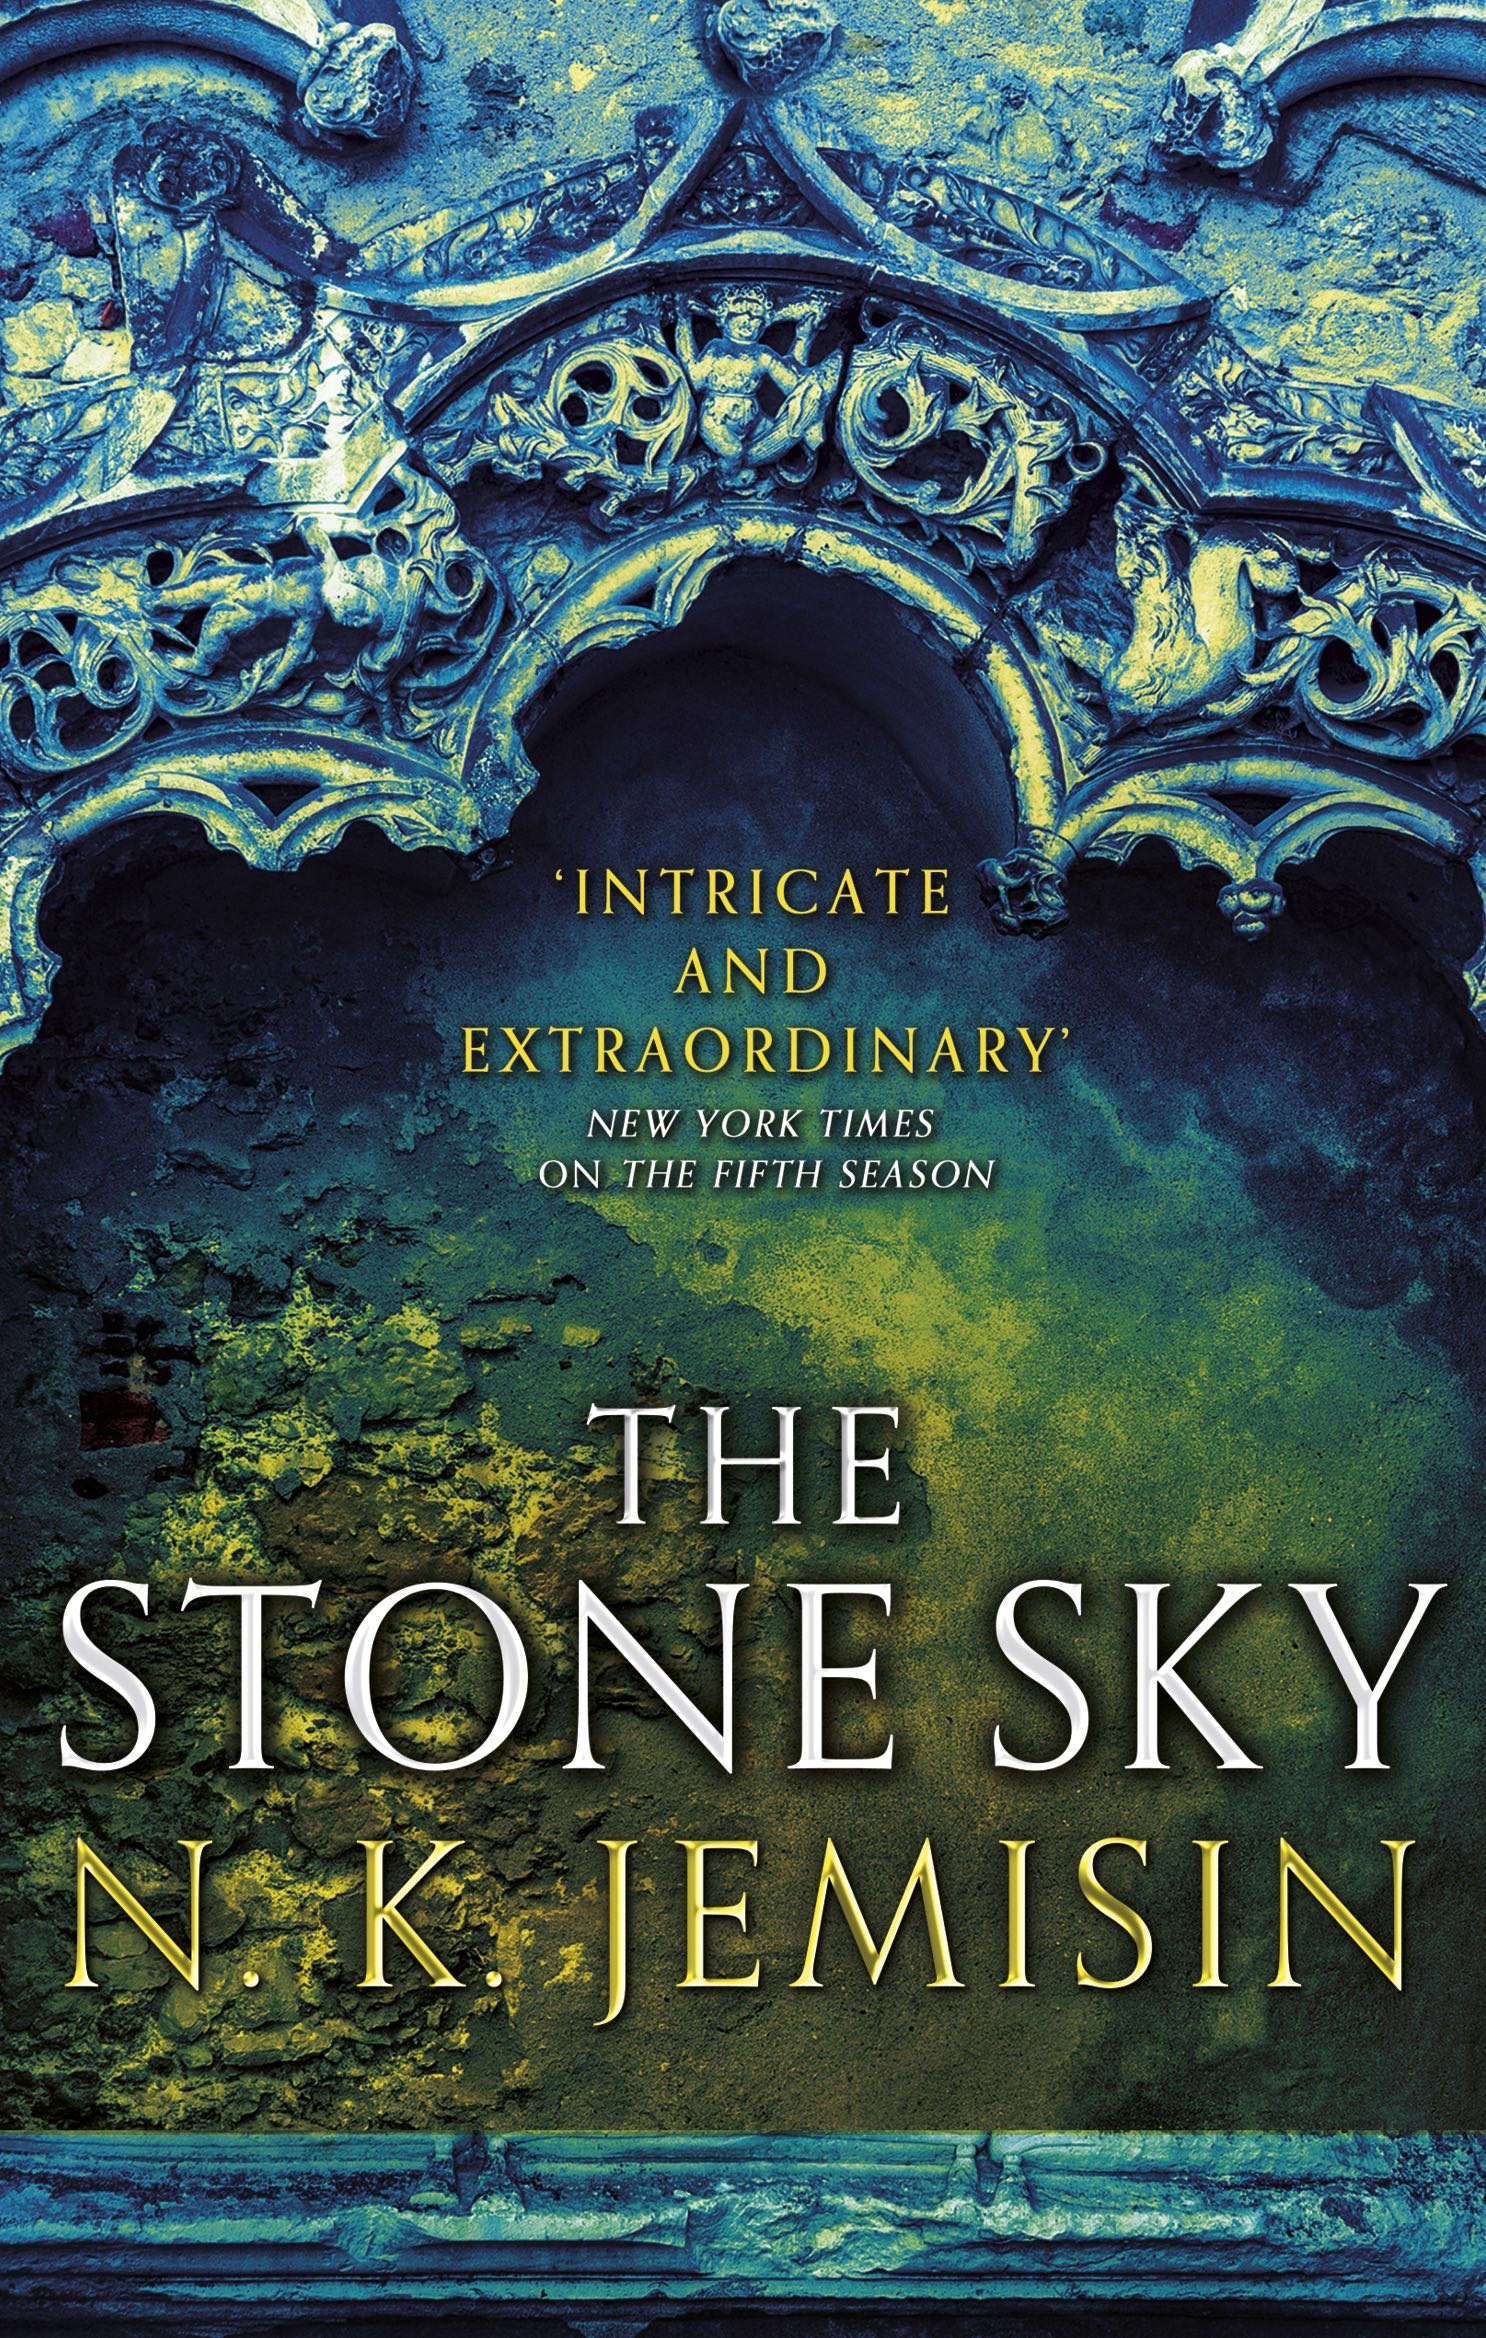 Audio from Aug 19th with N.K. Jemisin & A.C. Wise